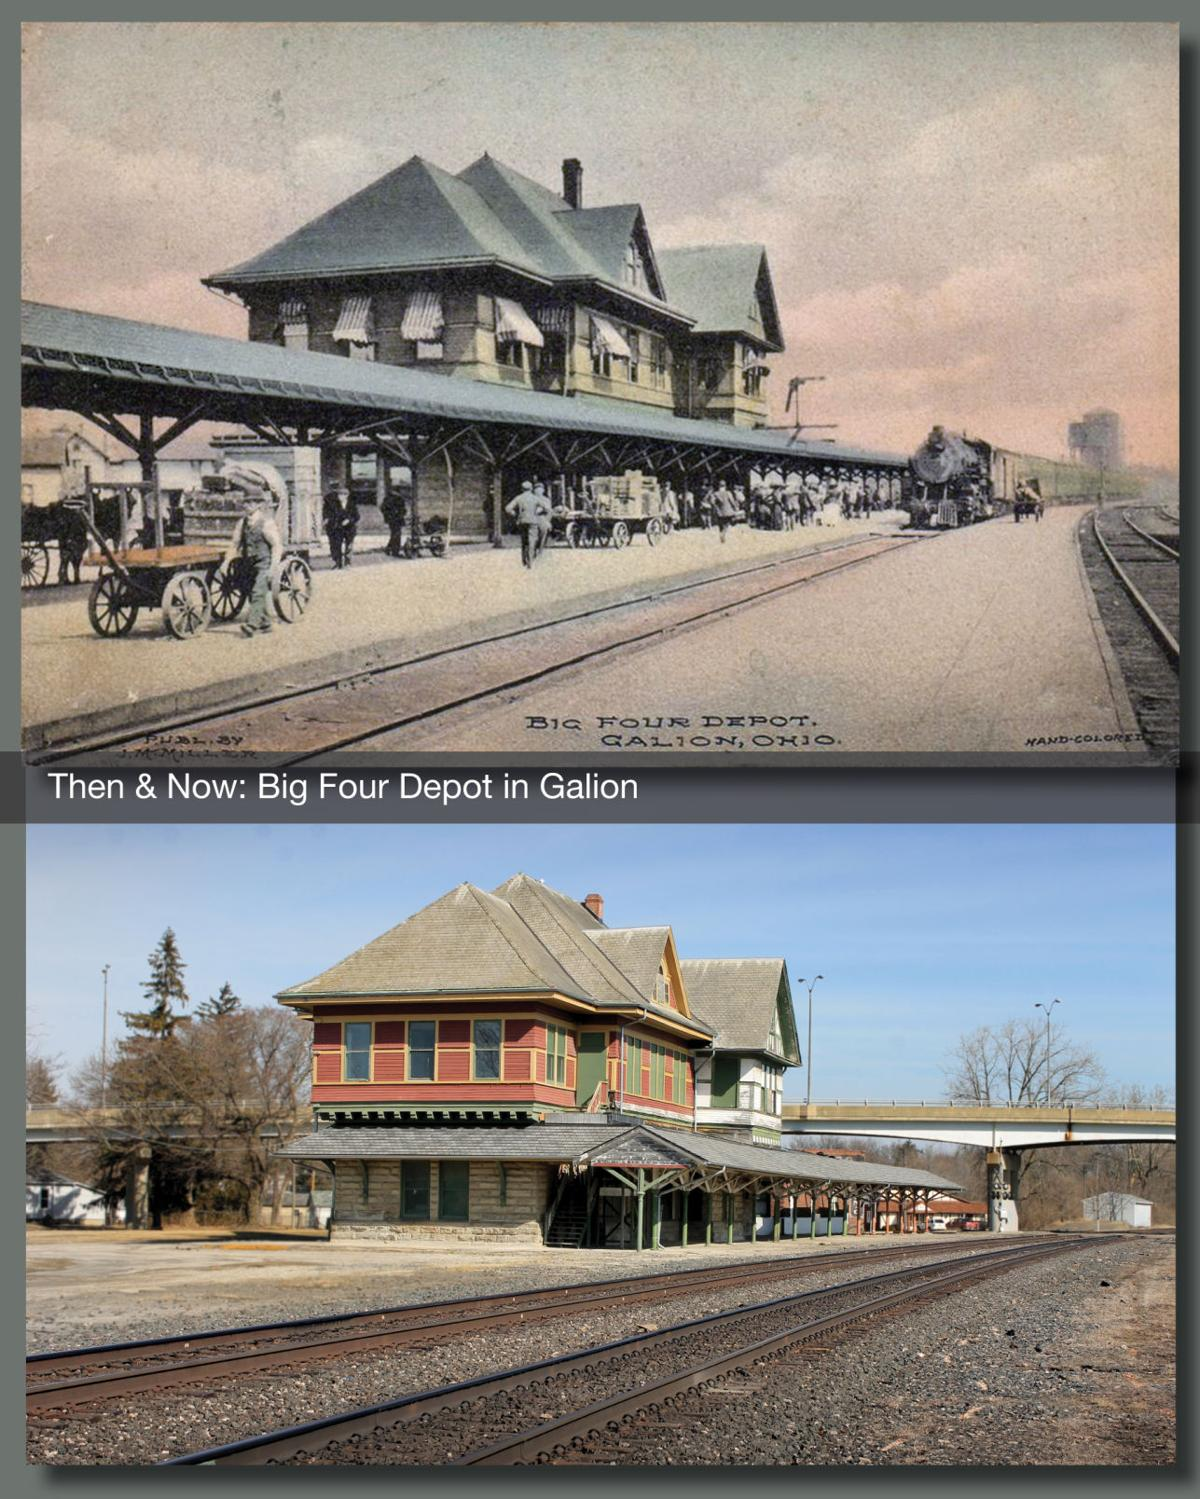 Then & Now: Big Four Depot in Galion